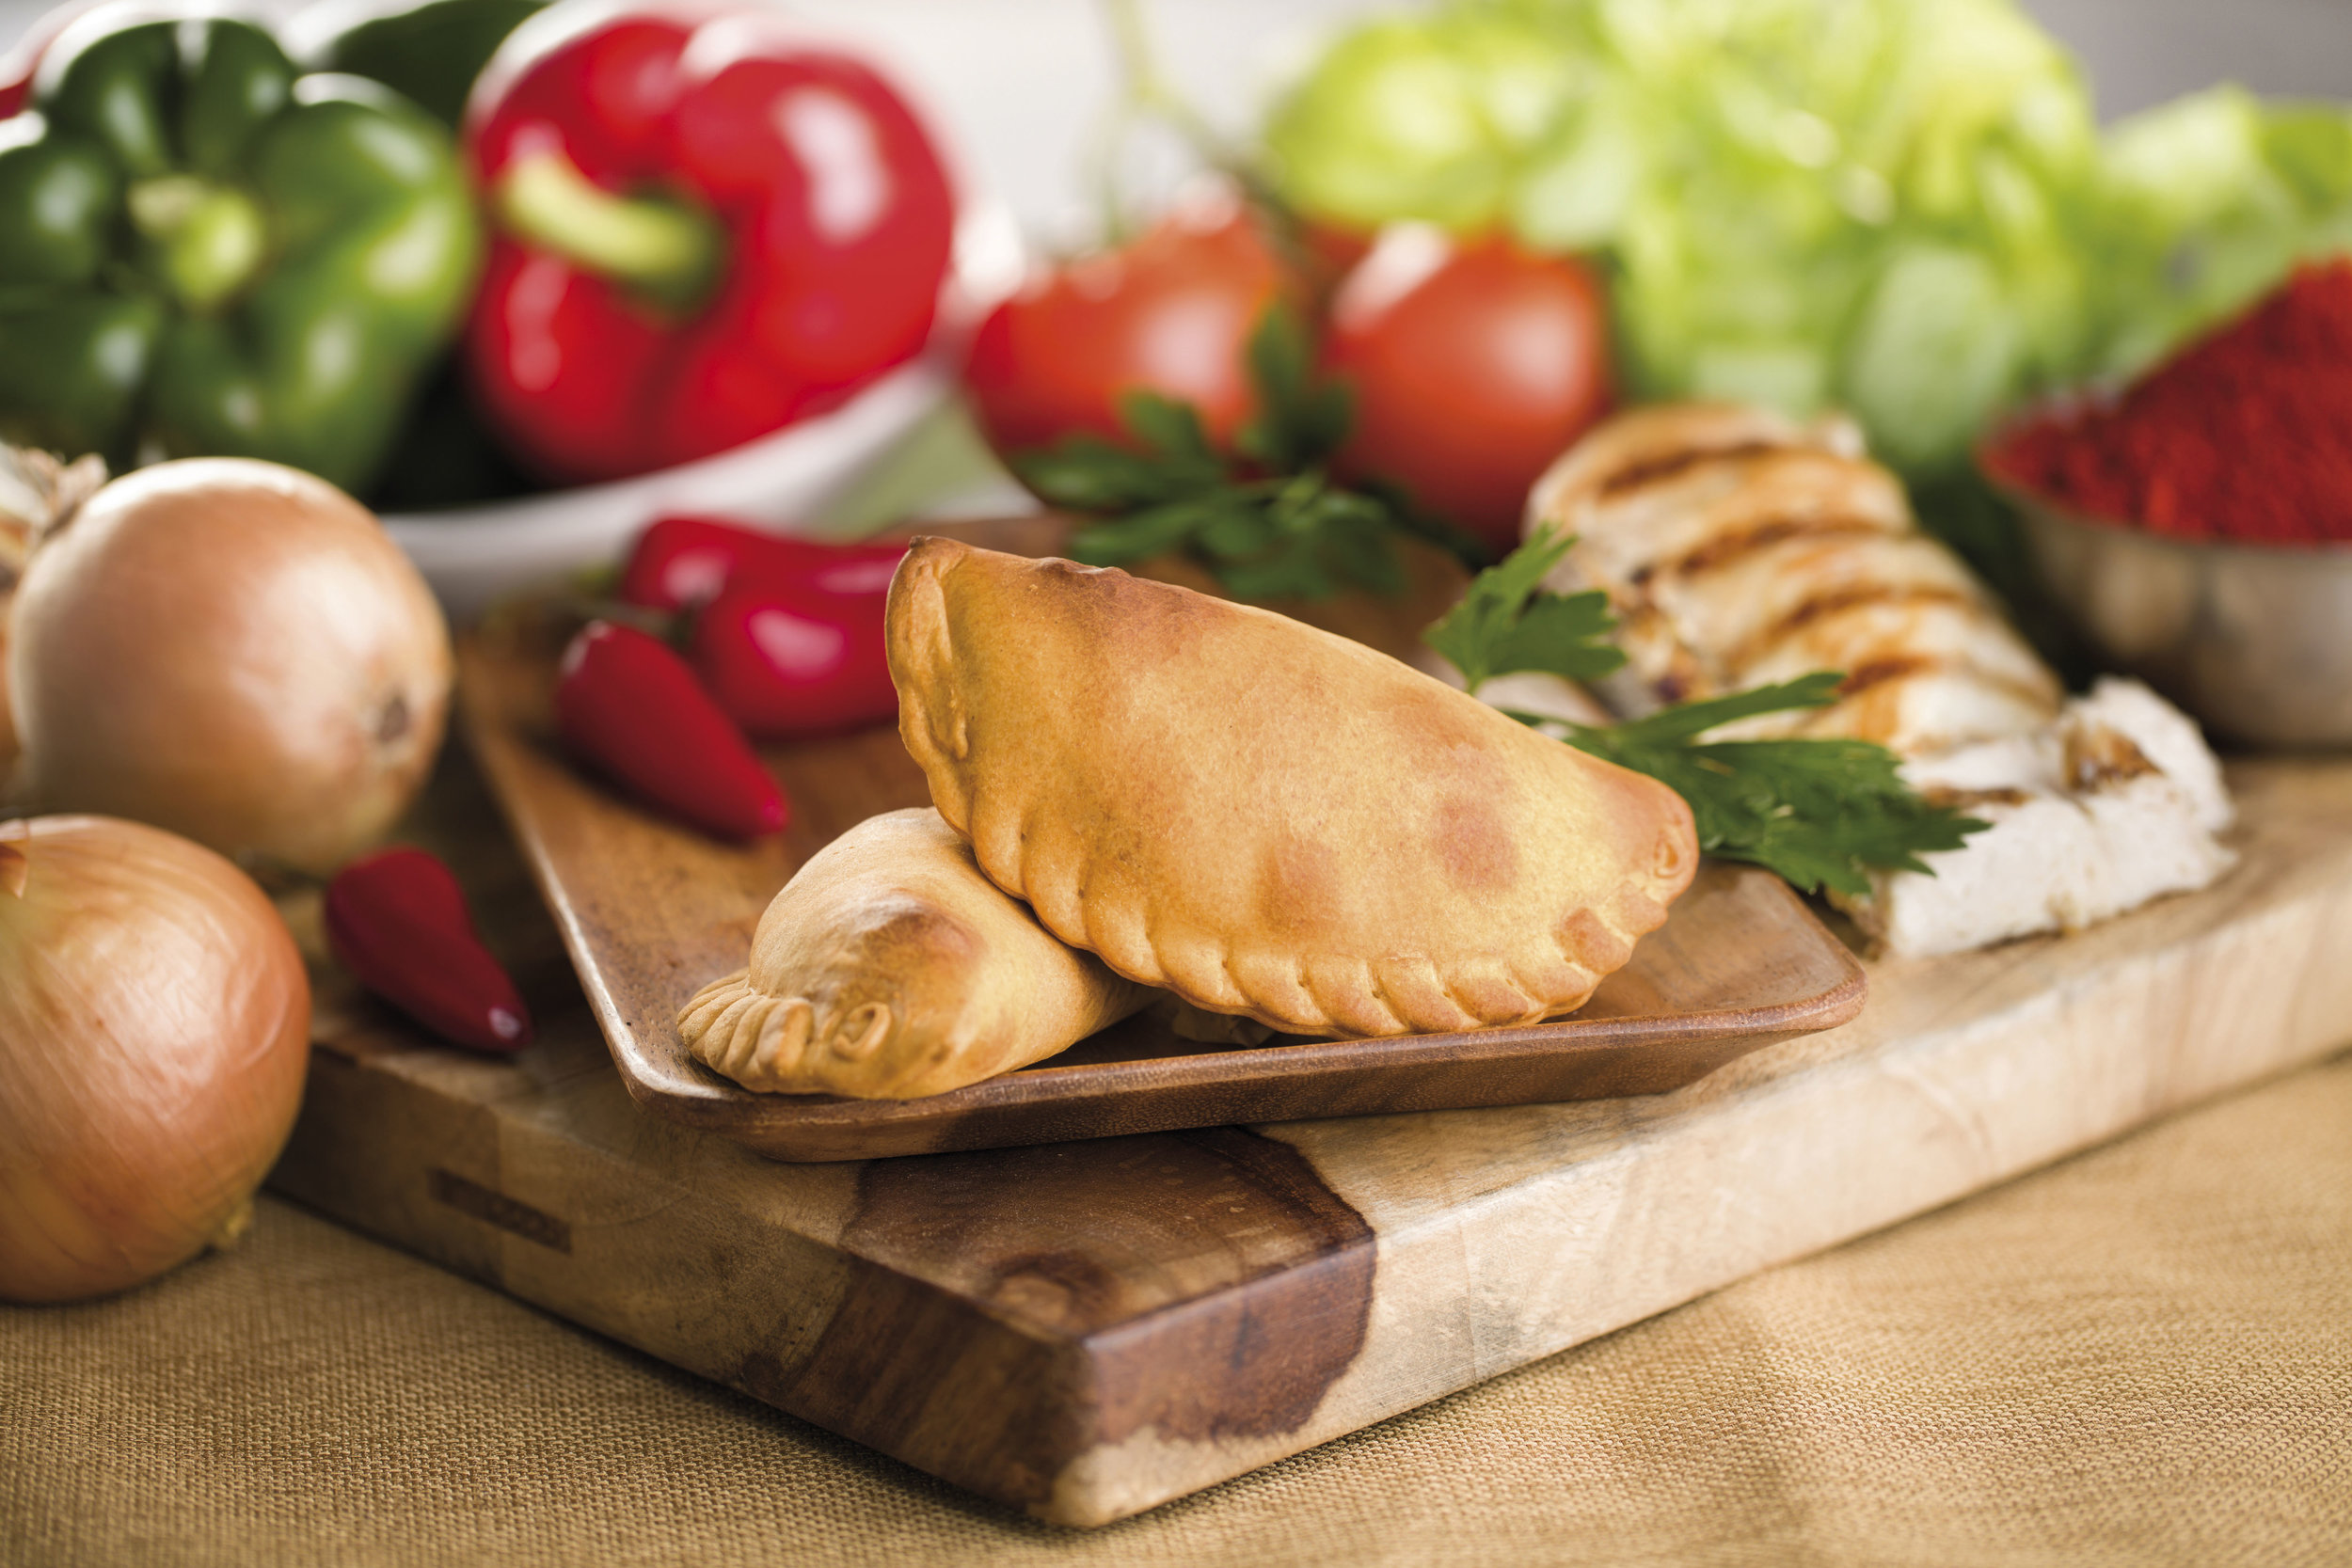 Nuchas's empanada - a vessel of flavors from around the world